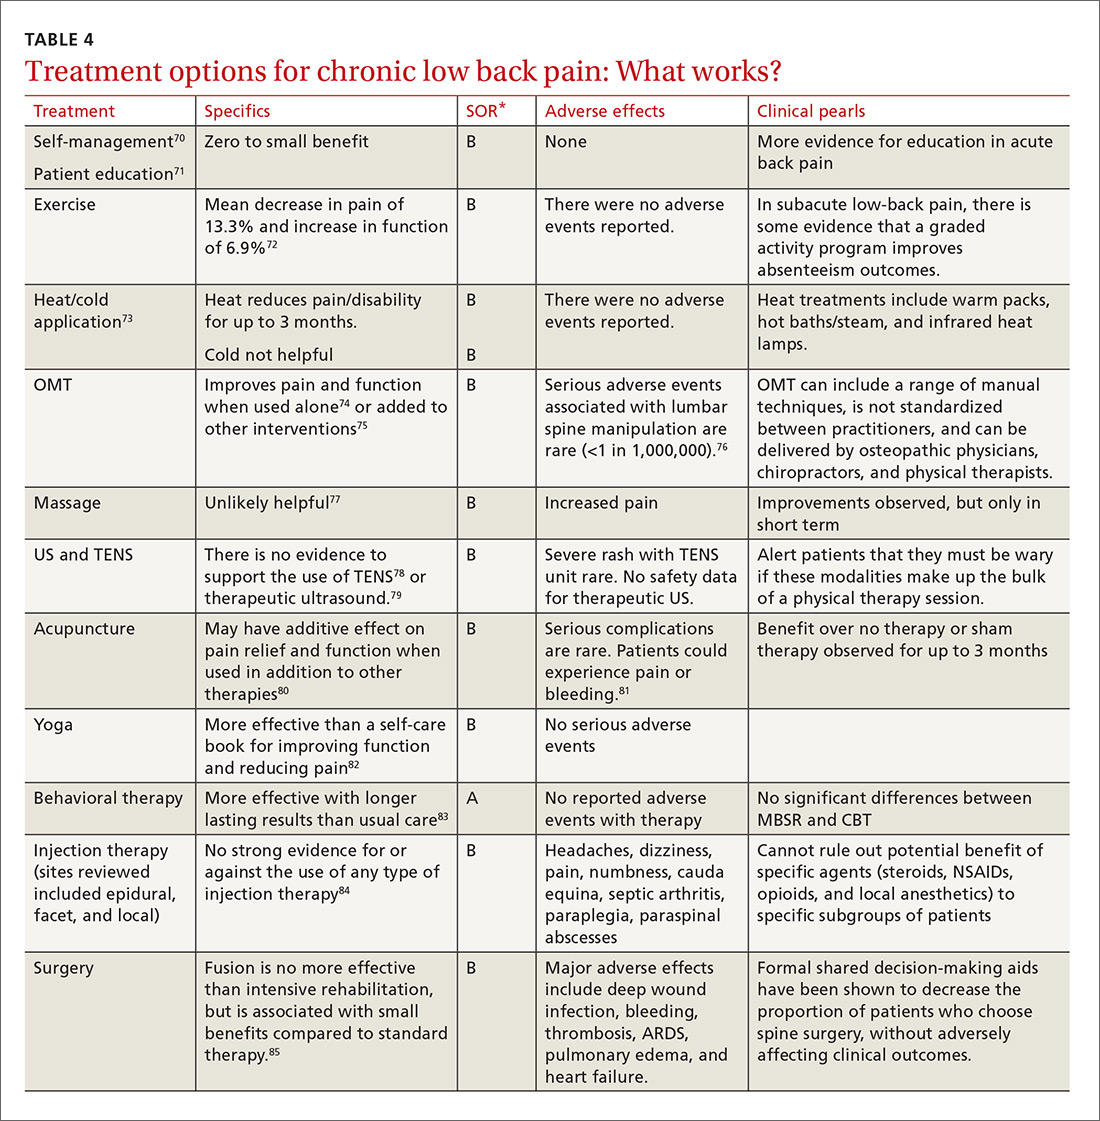 Treatment options for chronic low back pain: What works? image